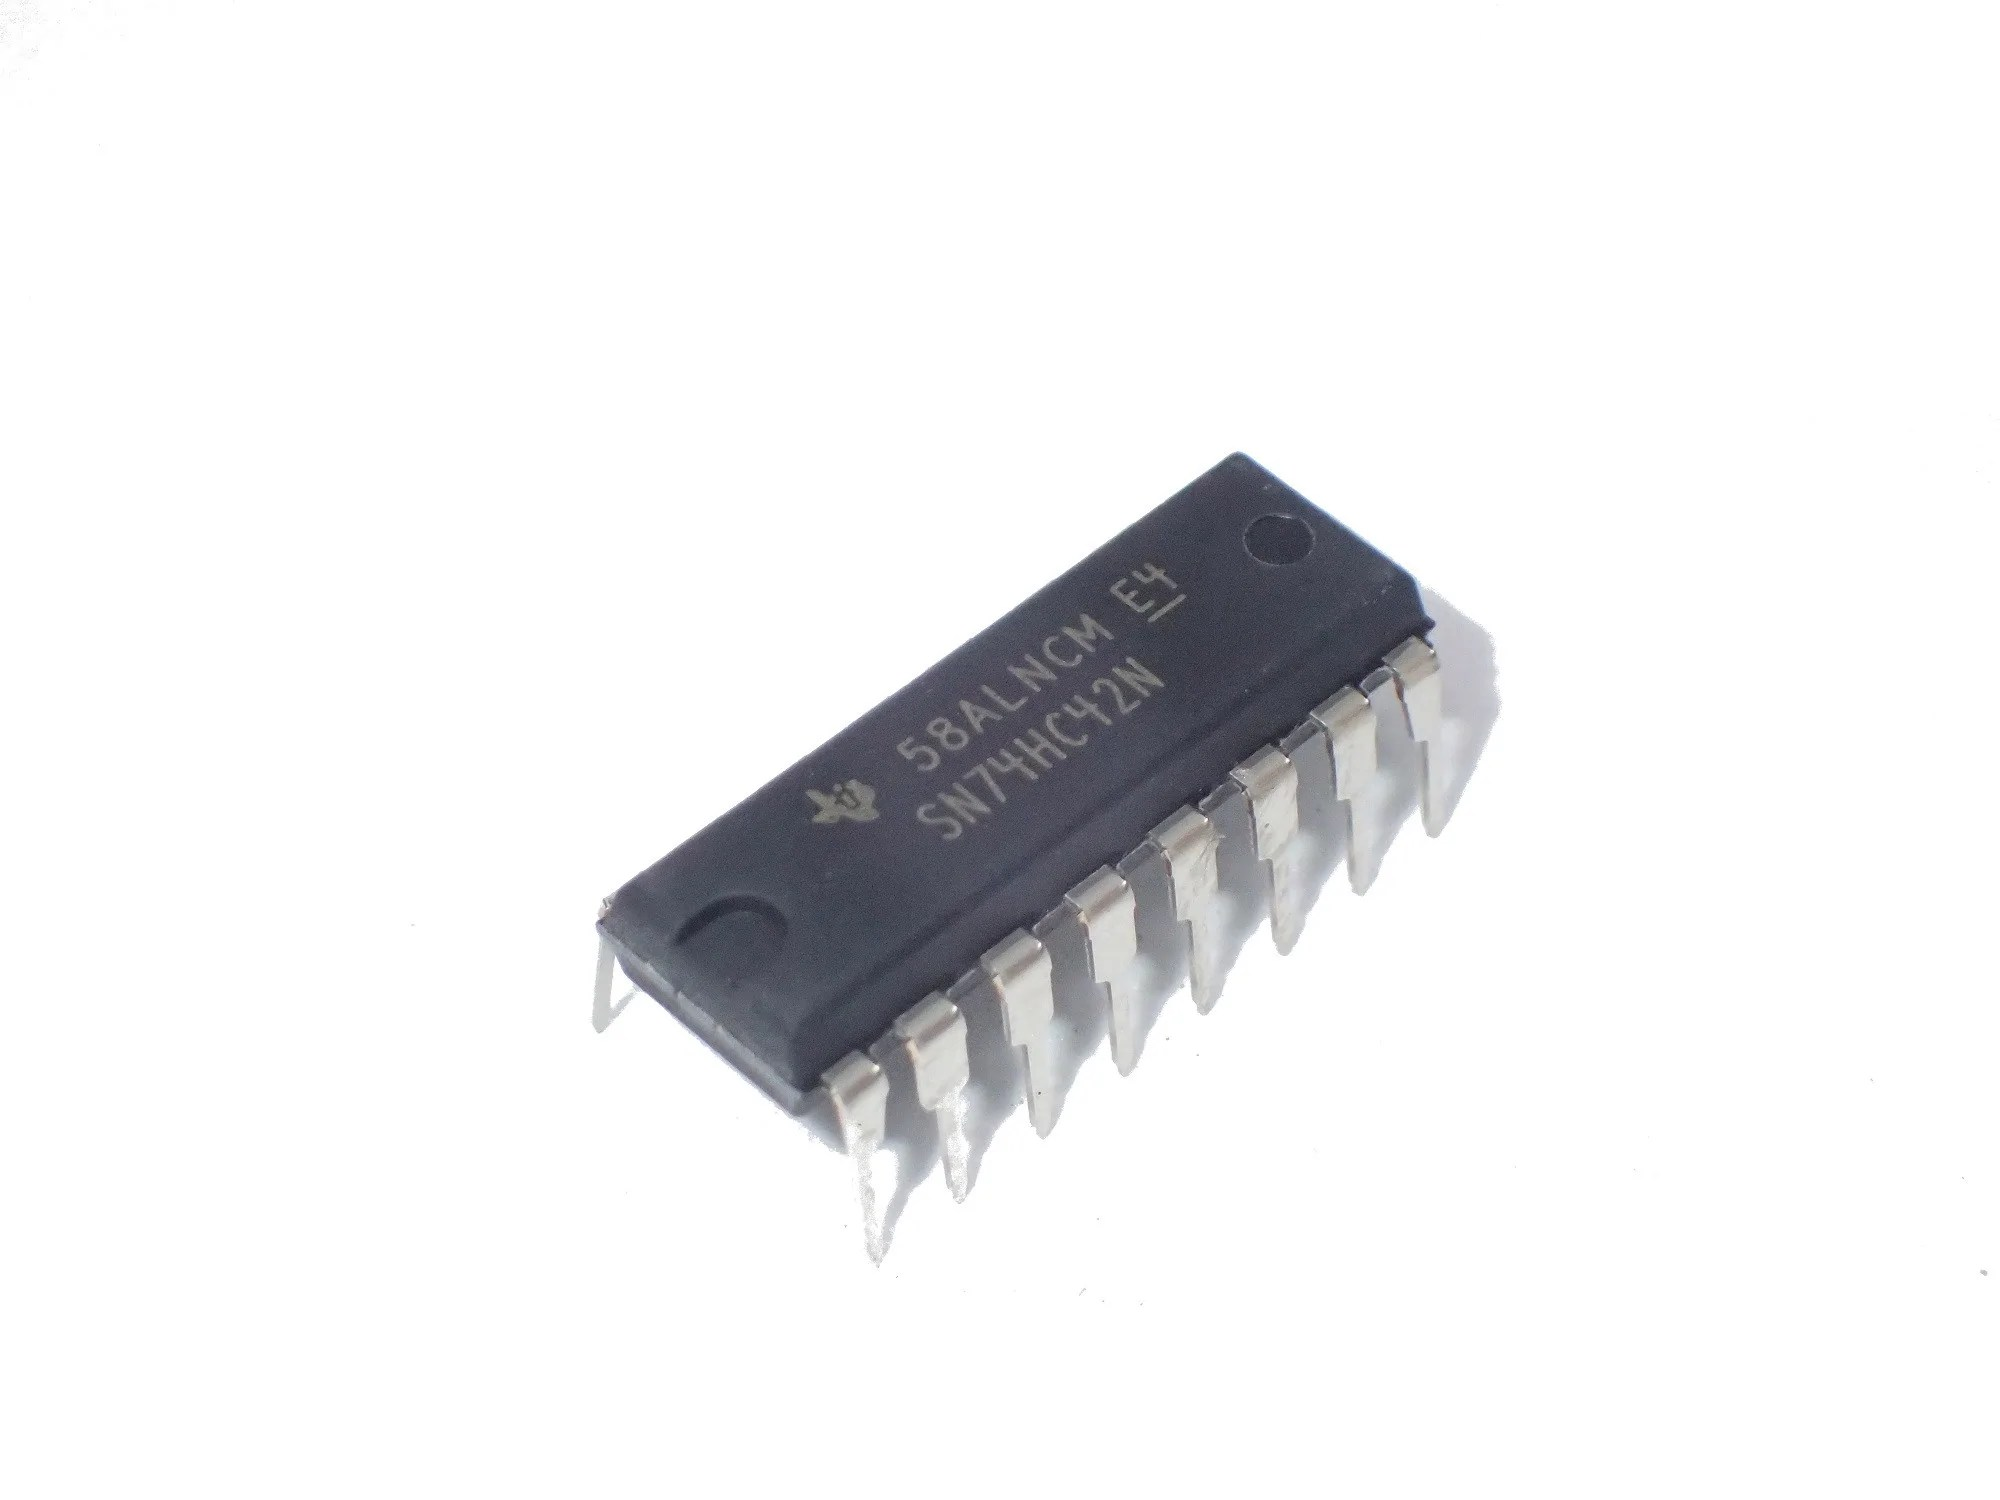 small resolution of sn74hc42n bcd to decimal decoder 10 output 5 2 ma 2 v to 6 v dip 16 x 2pcs